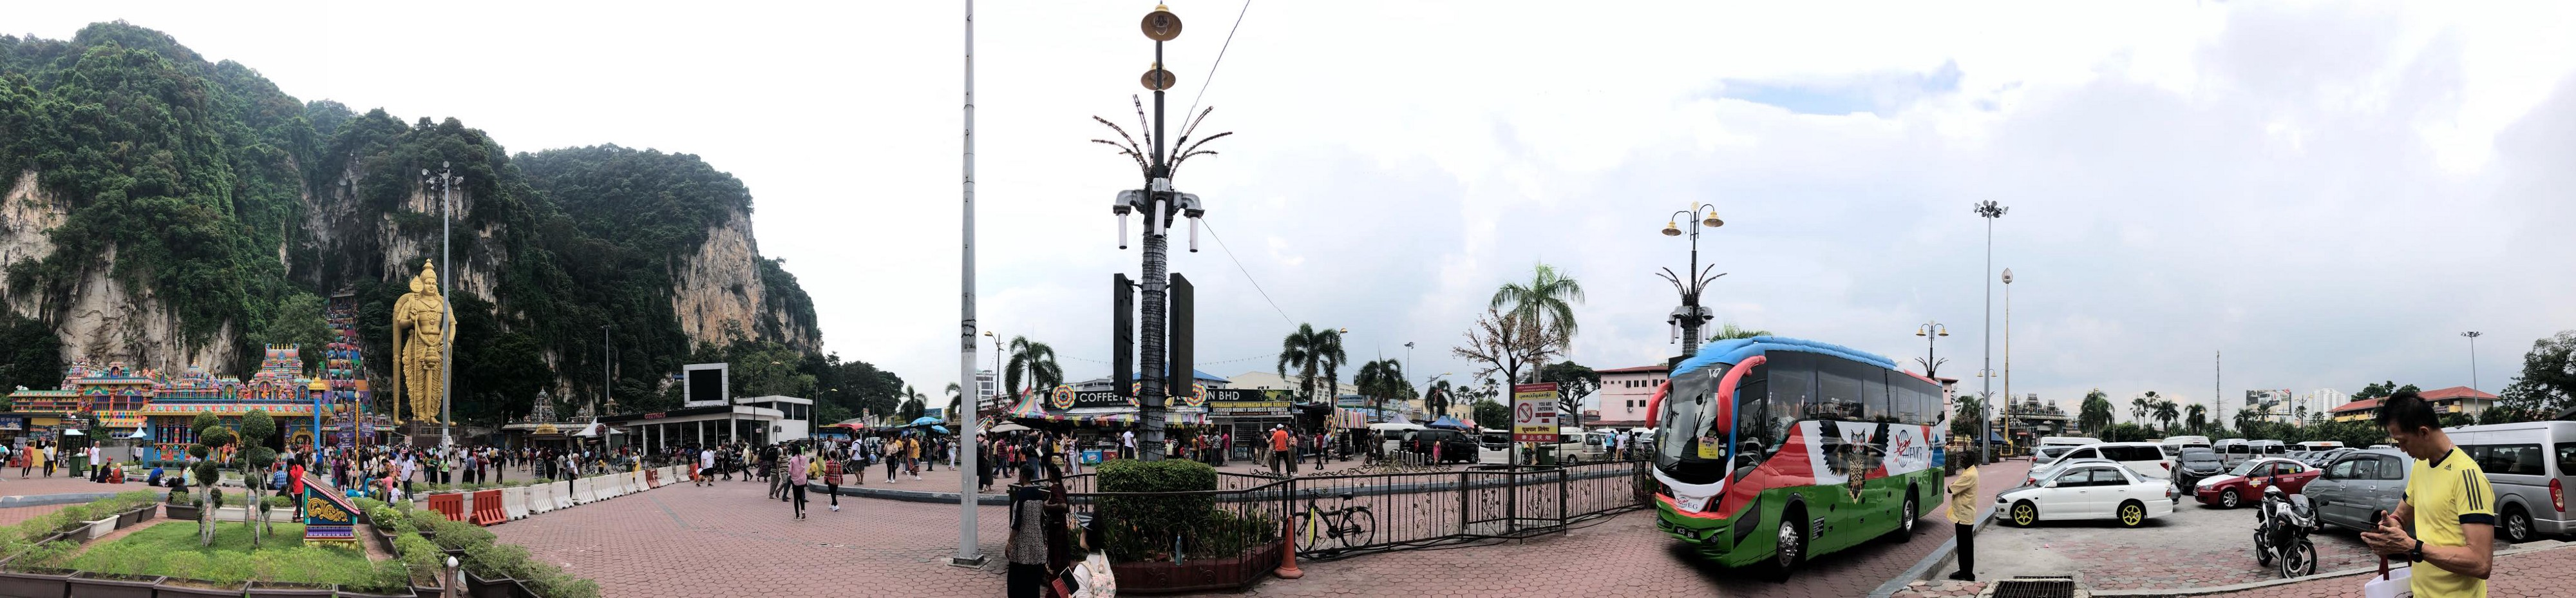 Panoramic of the entrance